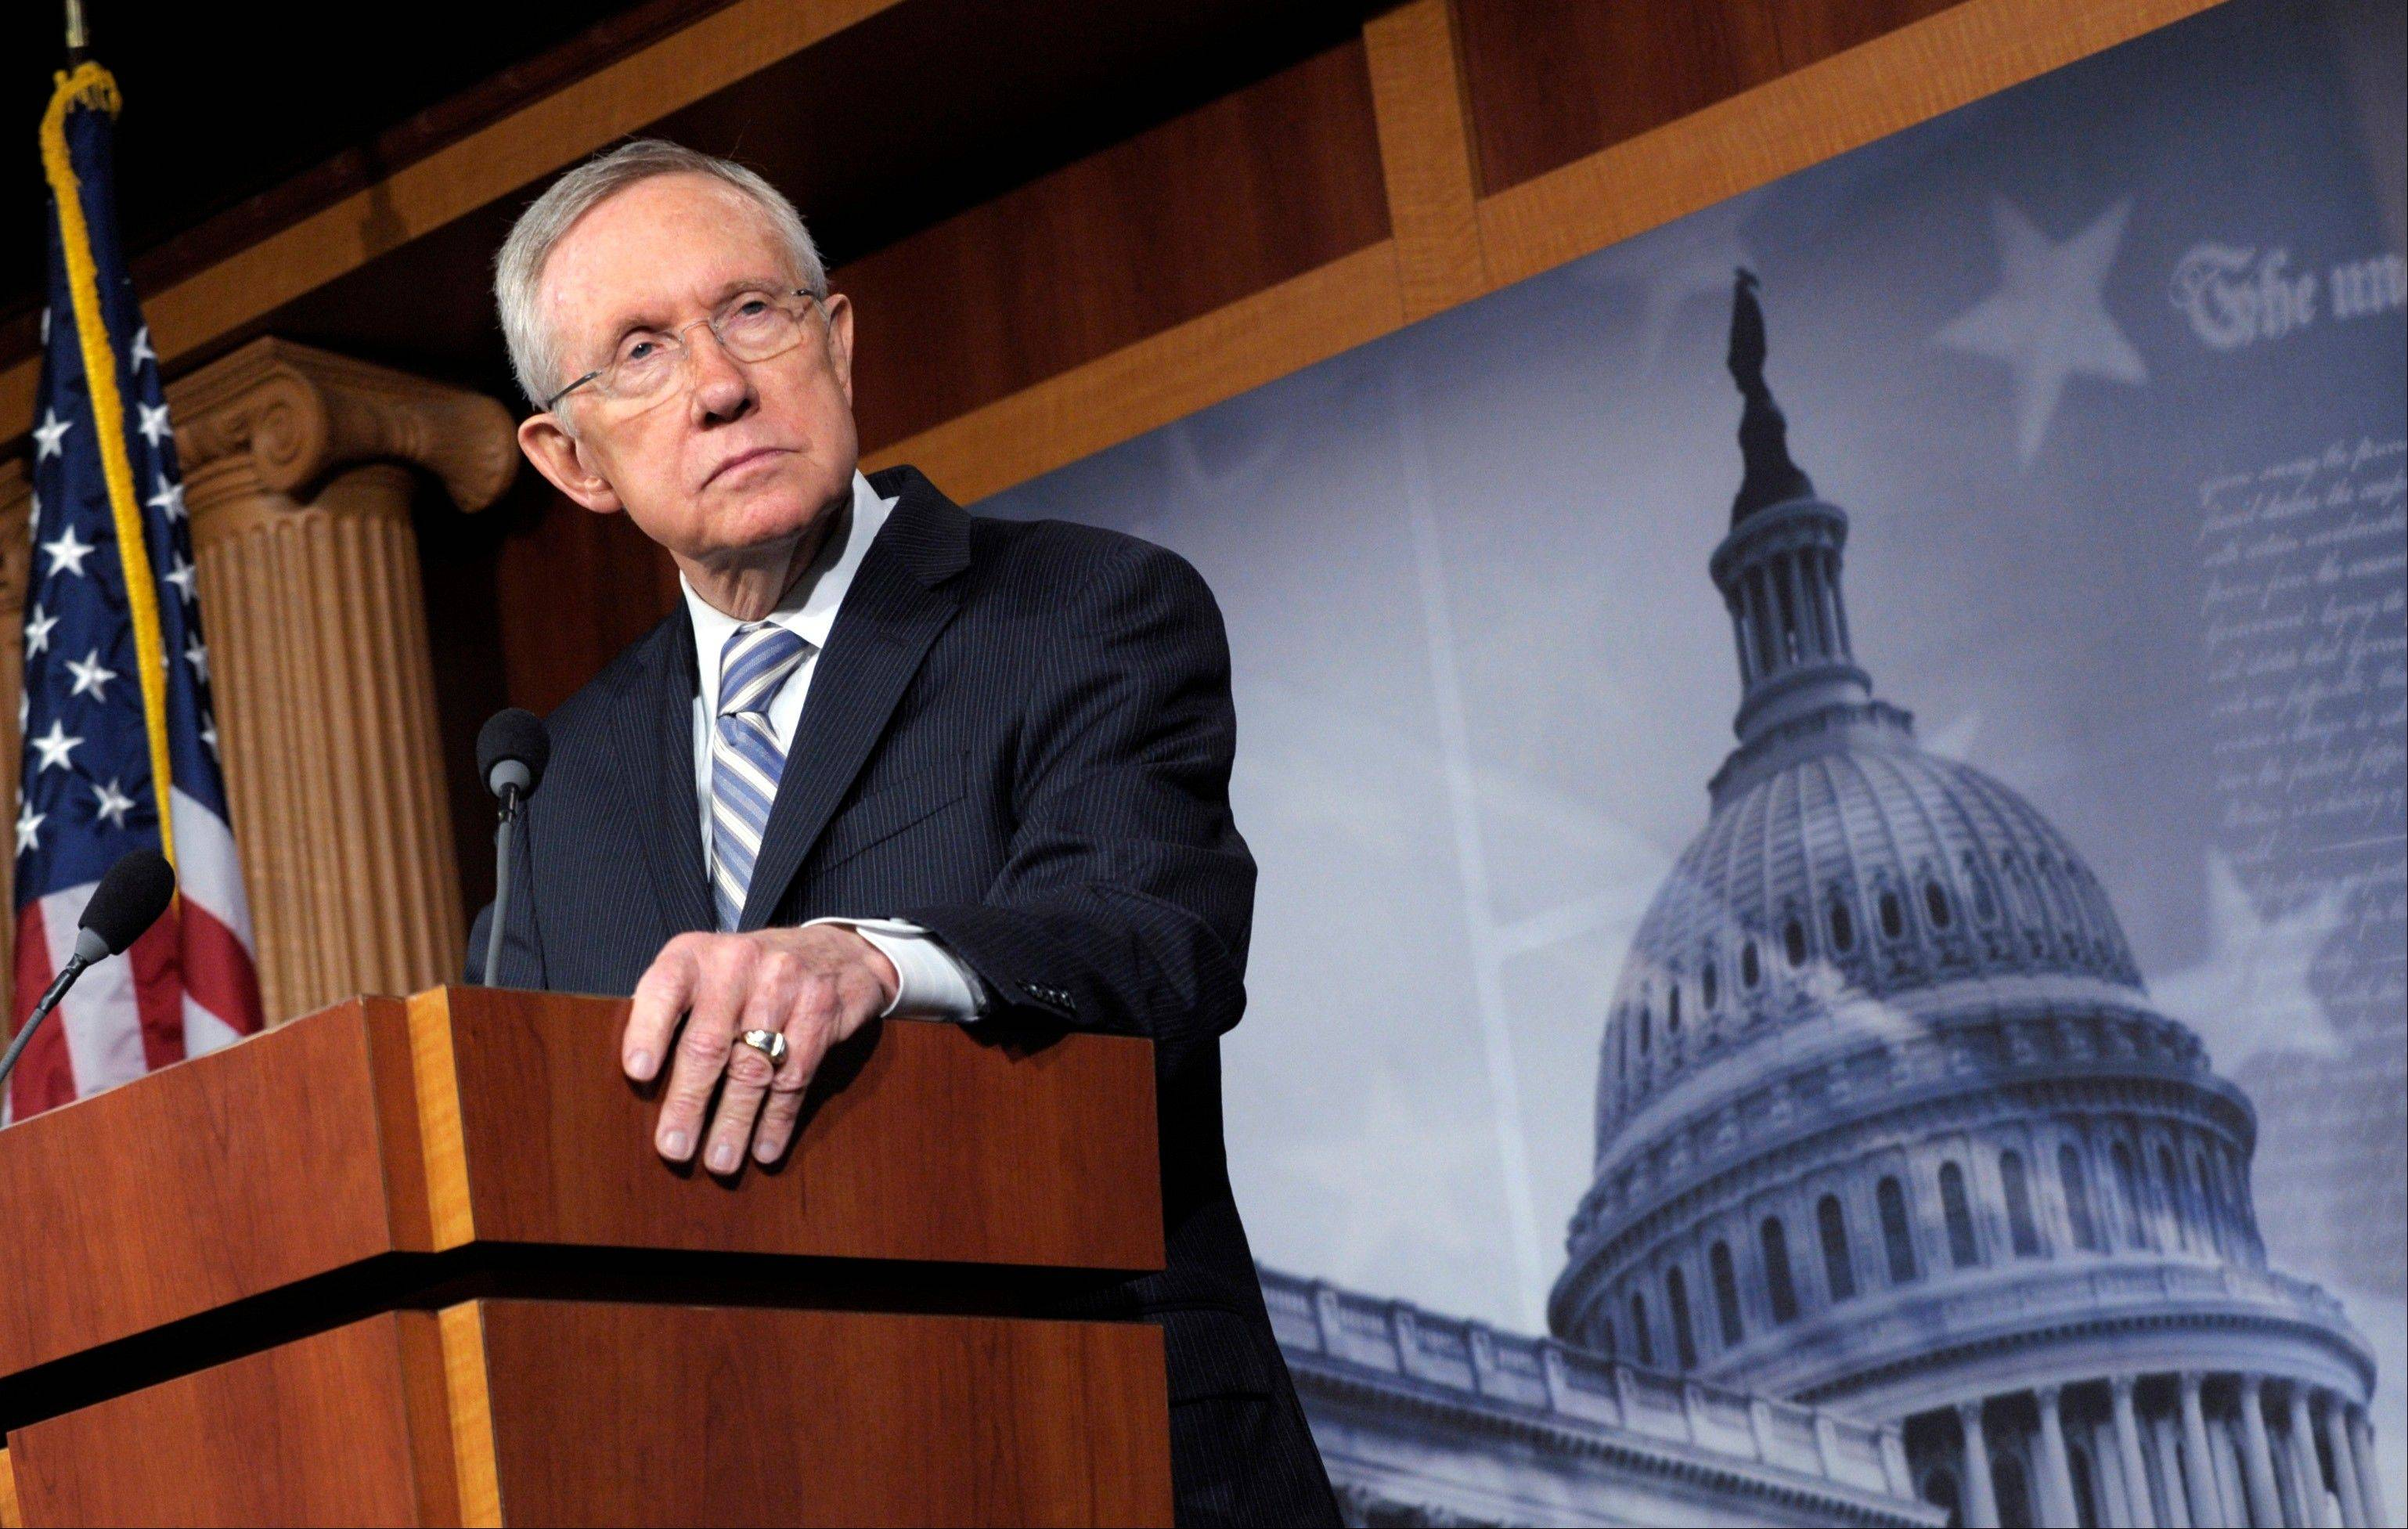 Senate Majority Leader Harry Reid of Nev. listens to a question during a news conference on Capitol Hill in Washington, Wednesday, Nov. 7, 2012, to discuss Tuesday's election results.